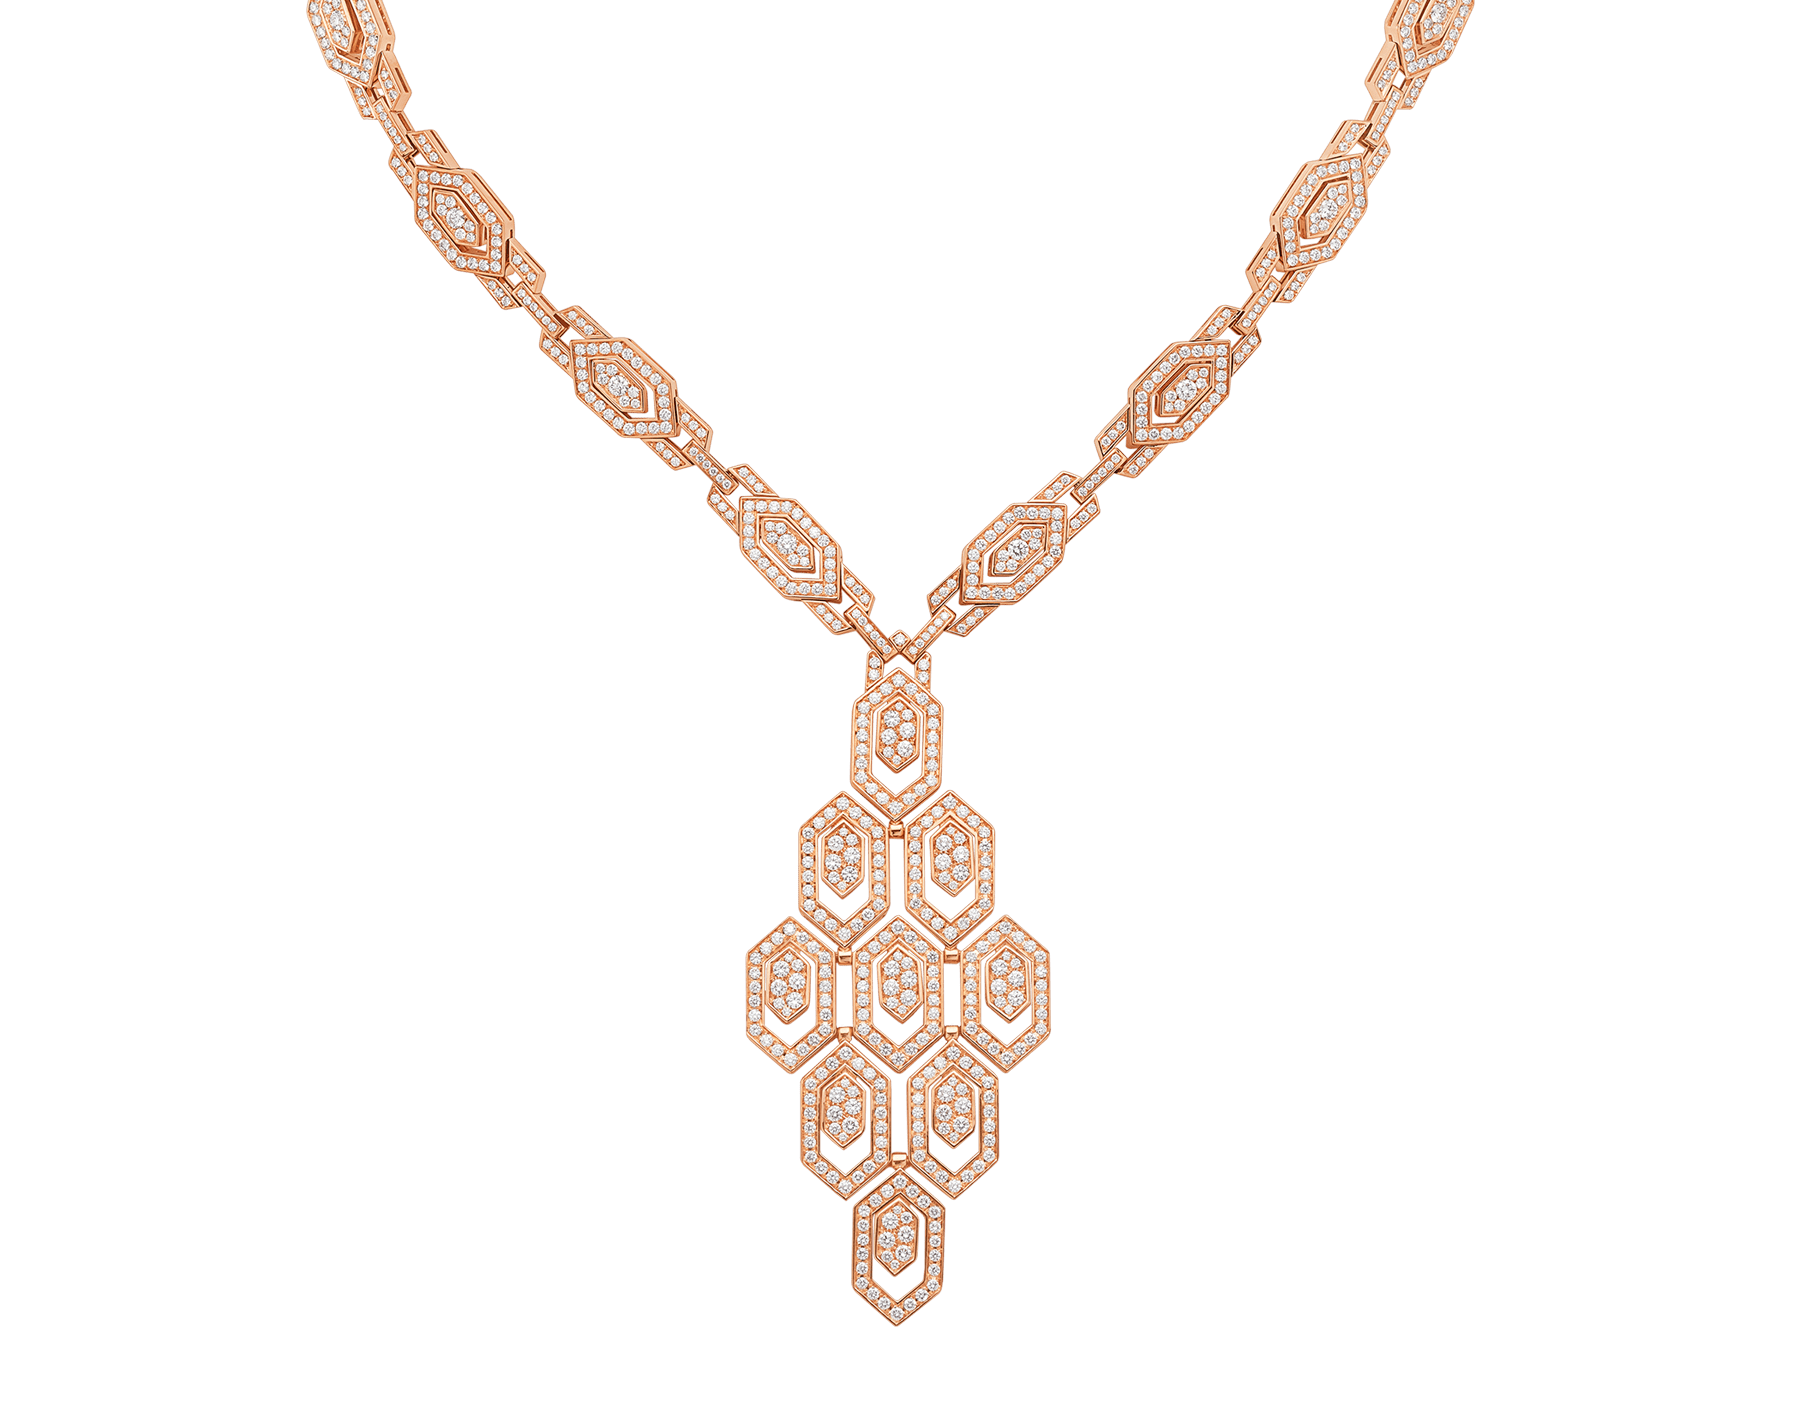 Serpenti 18 kt rose gold necklace set with pavé diamonds both on the chain and pendant. 356194 image 1